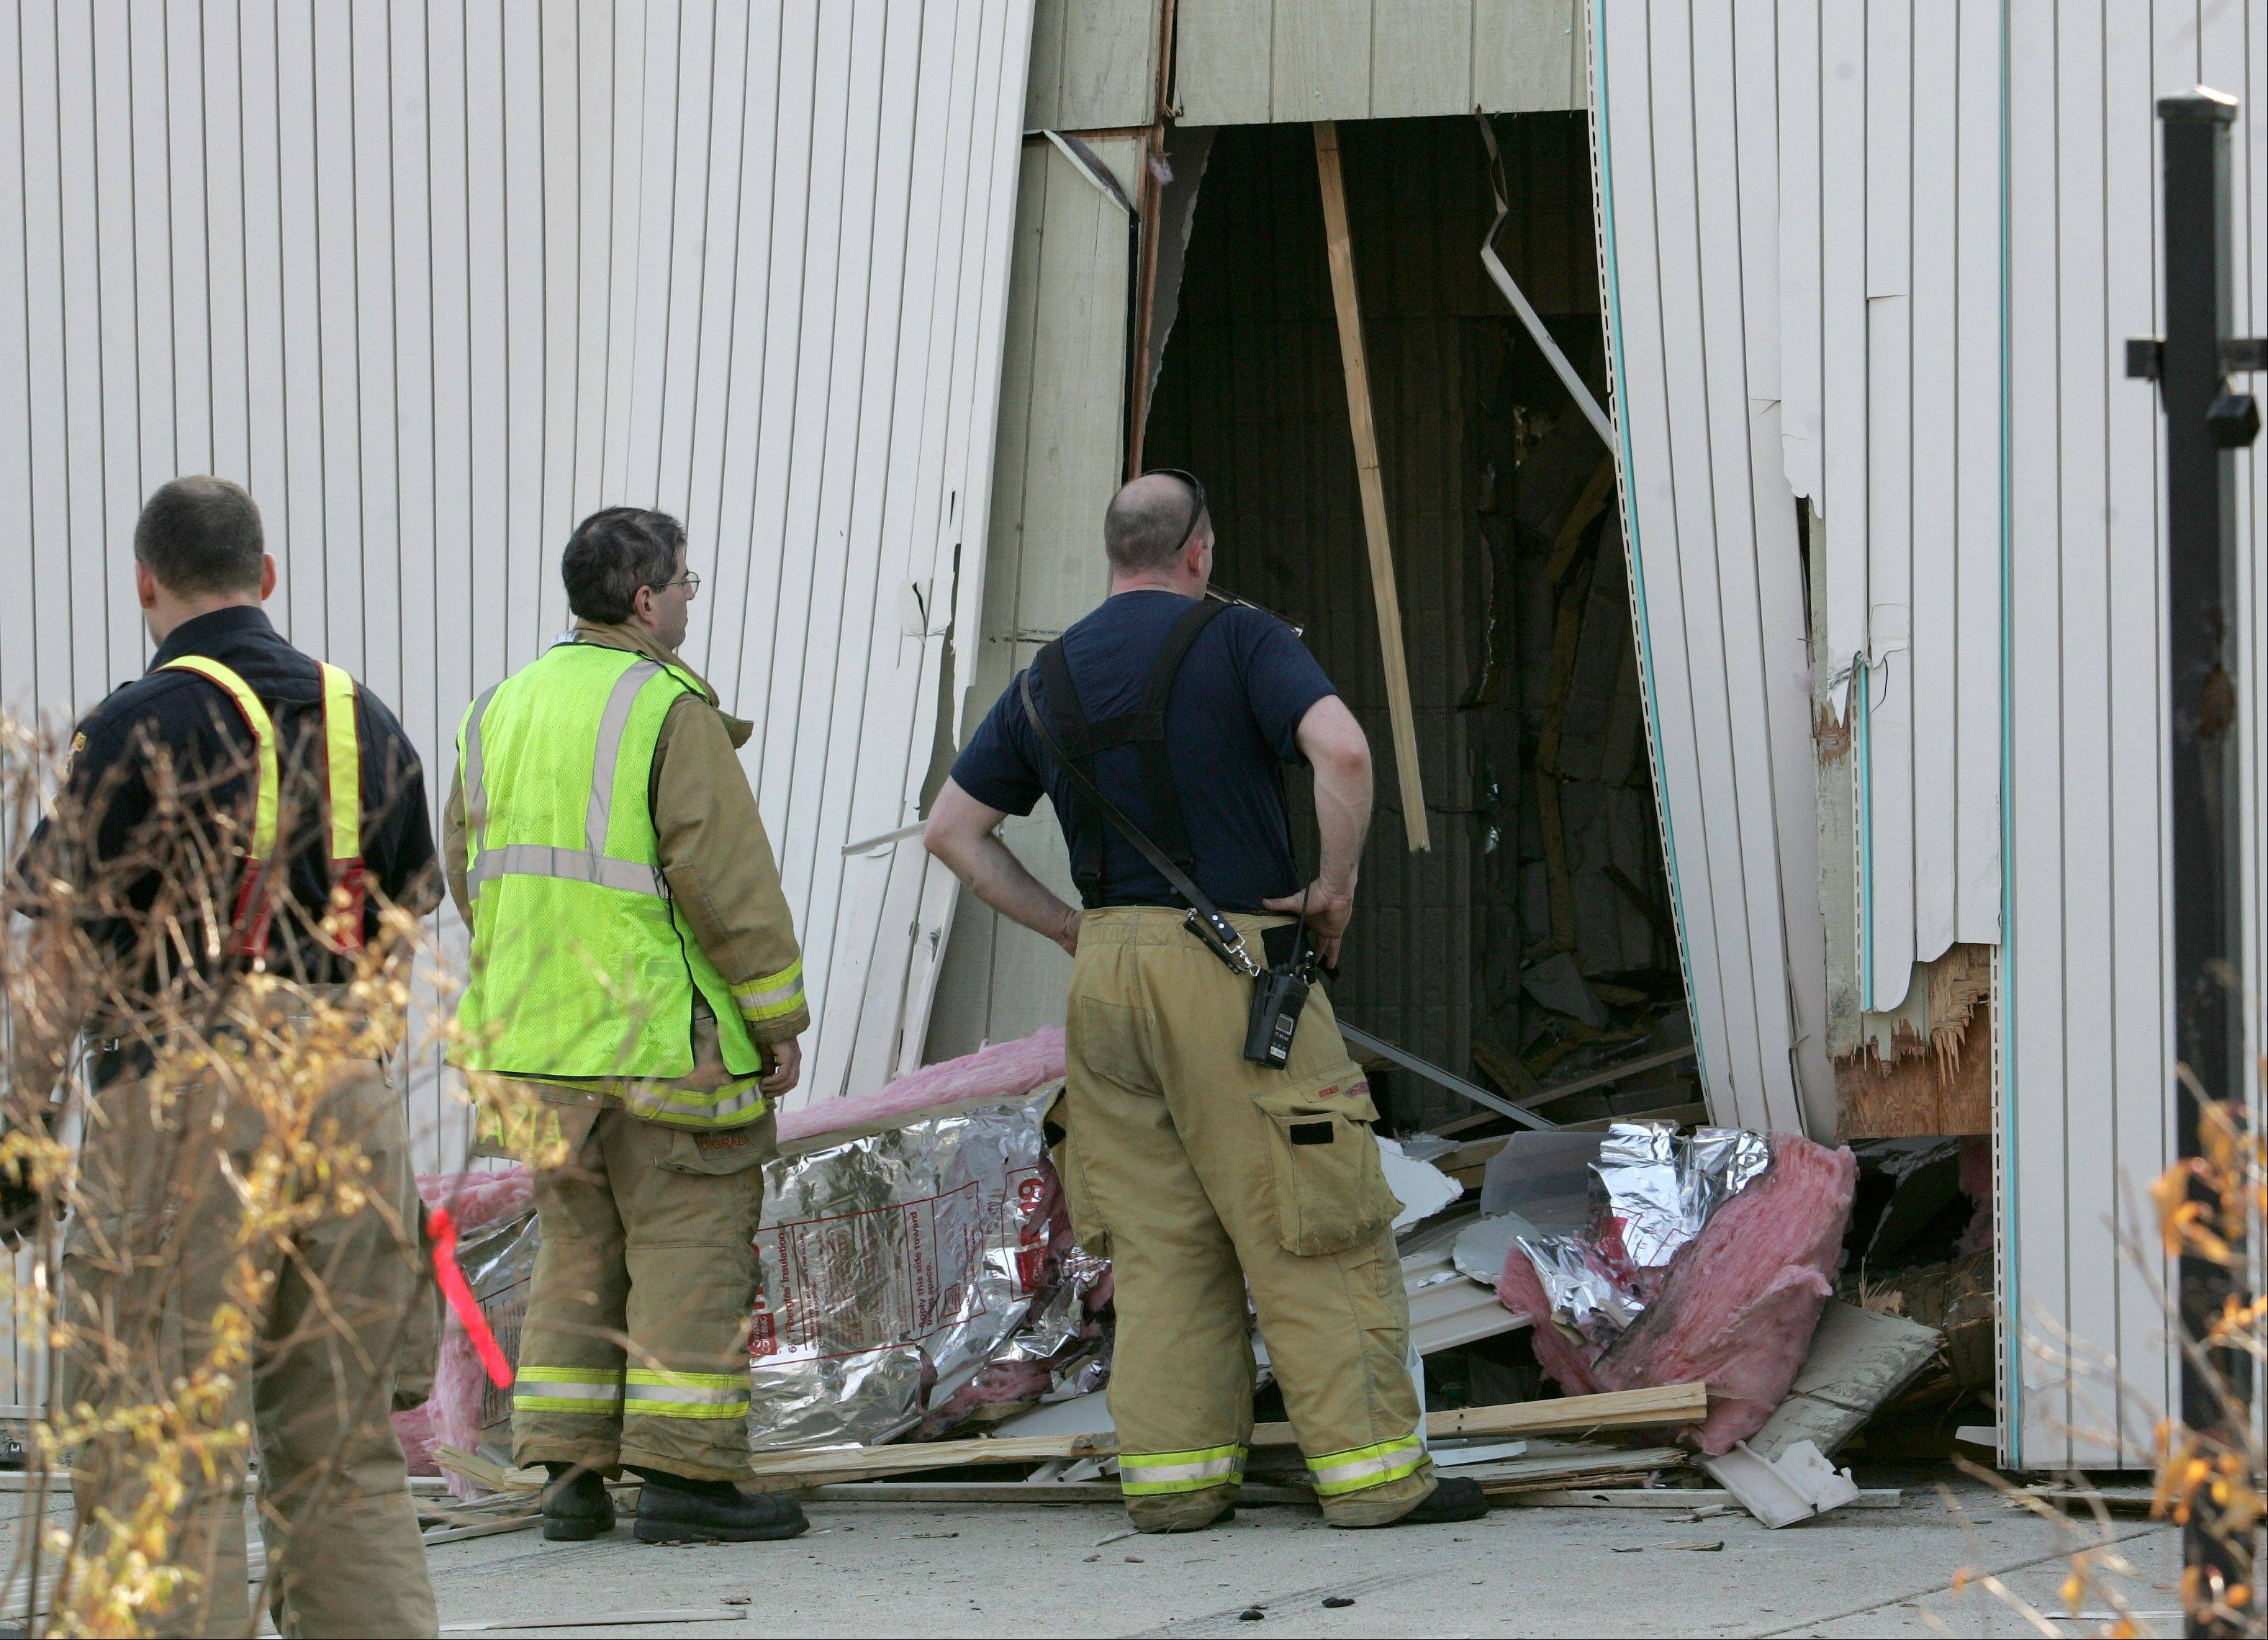 No one was injured Friday afternoon when a car crashed into Rosin Eyecare at 705 E. Ogden Ave., Naperville. Authorities said the vehicle went through an exterior wall and stopped about five feet into the lobby.